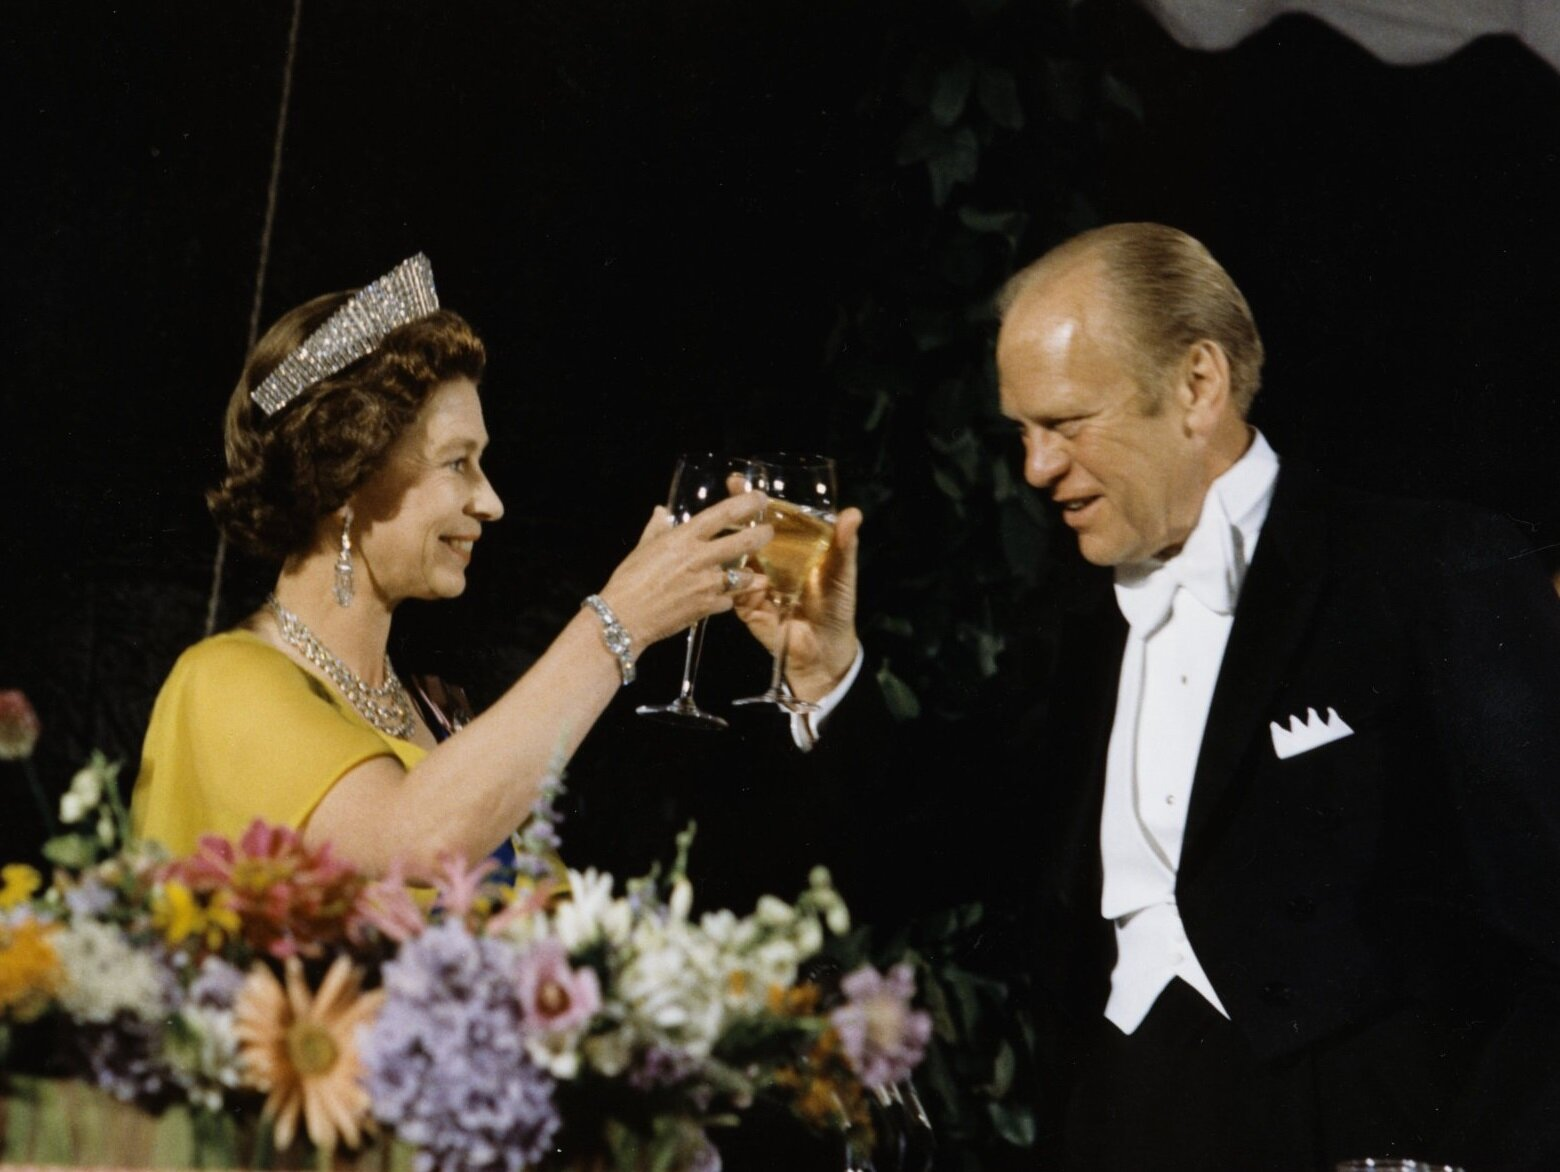 Gerald Ford toasts with Queen Elizabeth II.  Credit: White House Historical Association